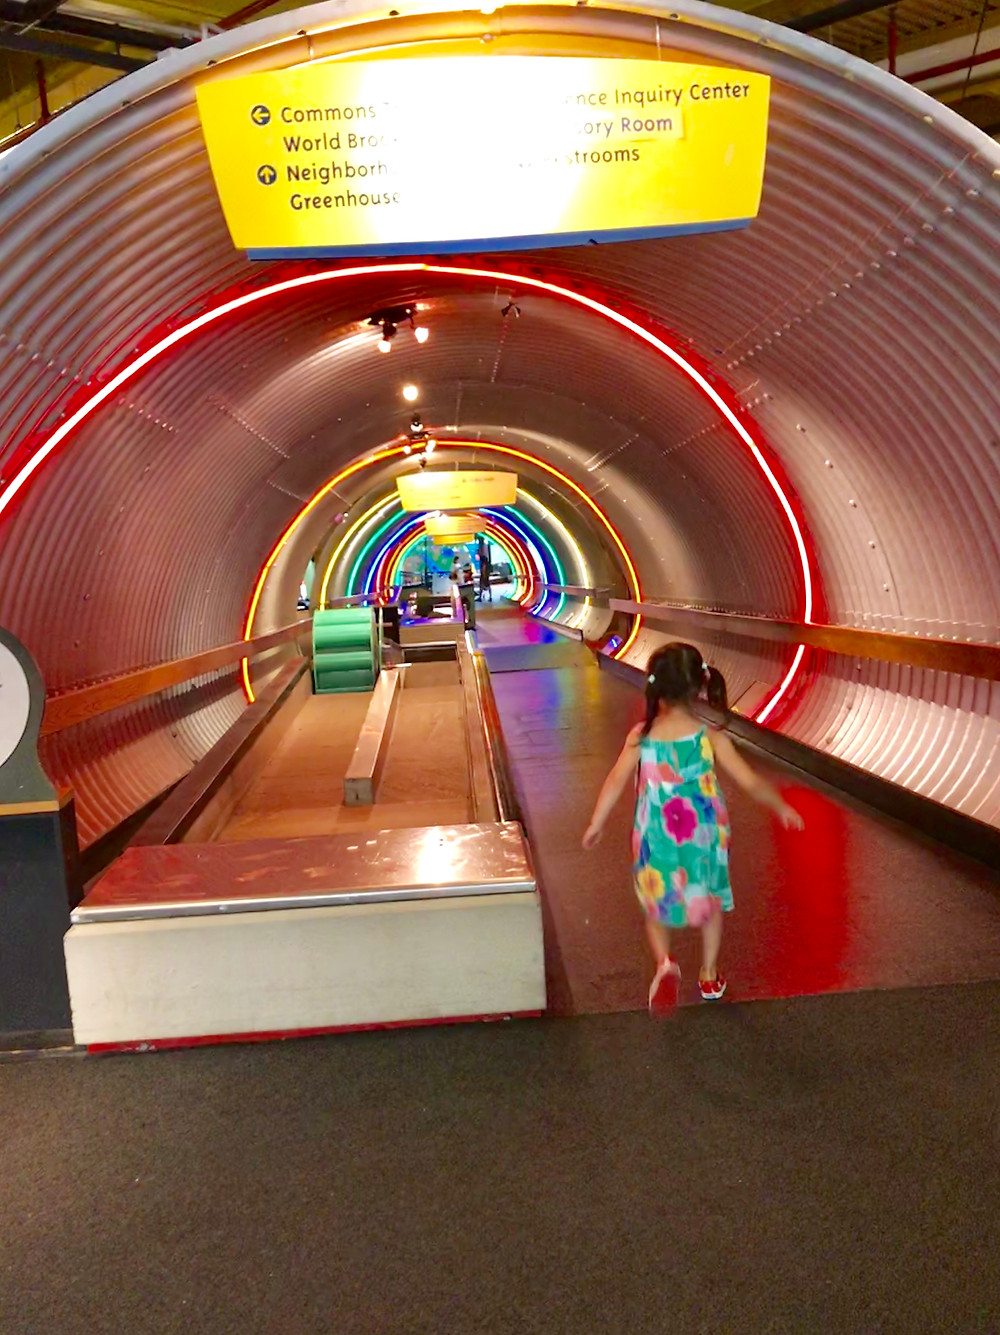 wigwam, world brooklyn, brooklyn children's museum, curious g and me, crown heights, children's museums, water table, dress up, rainbow tunnel